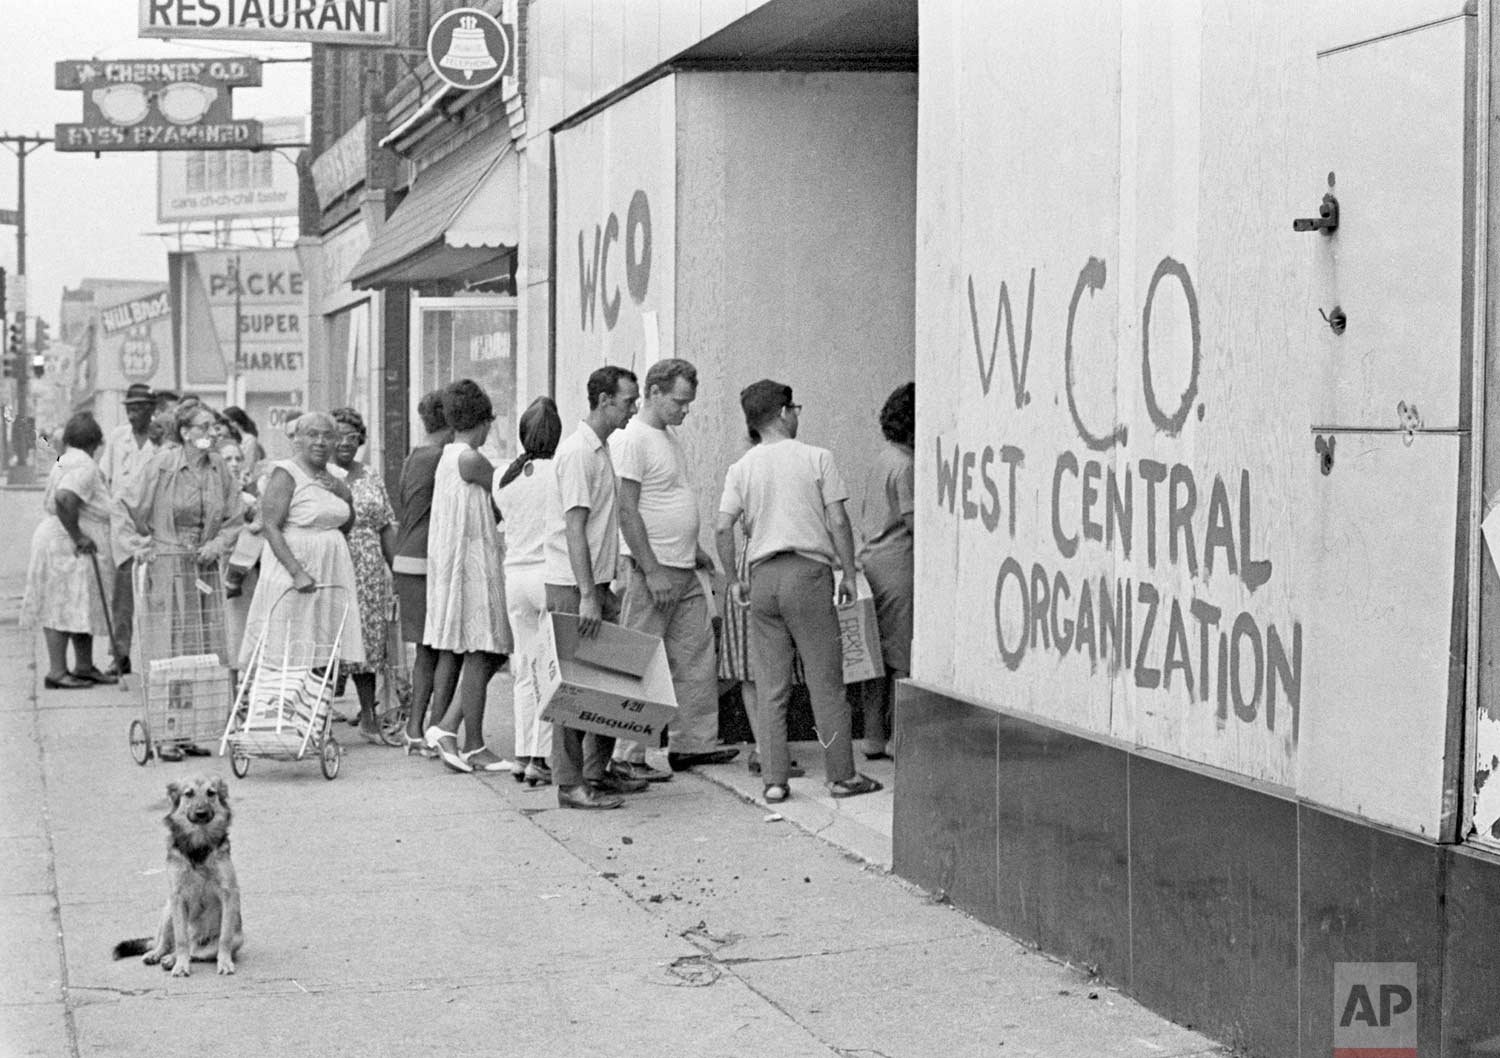 In this July 27, 1967 photo, residents of Detroit's riot area stand in line for free emergency food from a neighborhood organization. Hundreds of grocery stores were burned or looted during the rioting. (AP Photo)